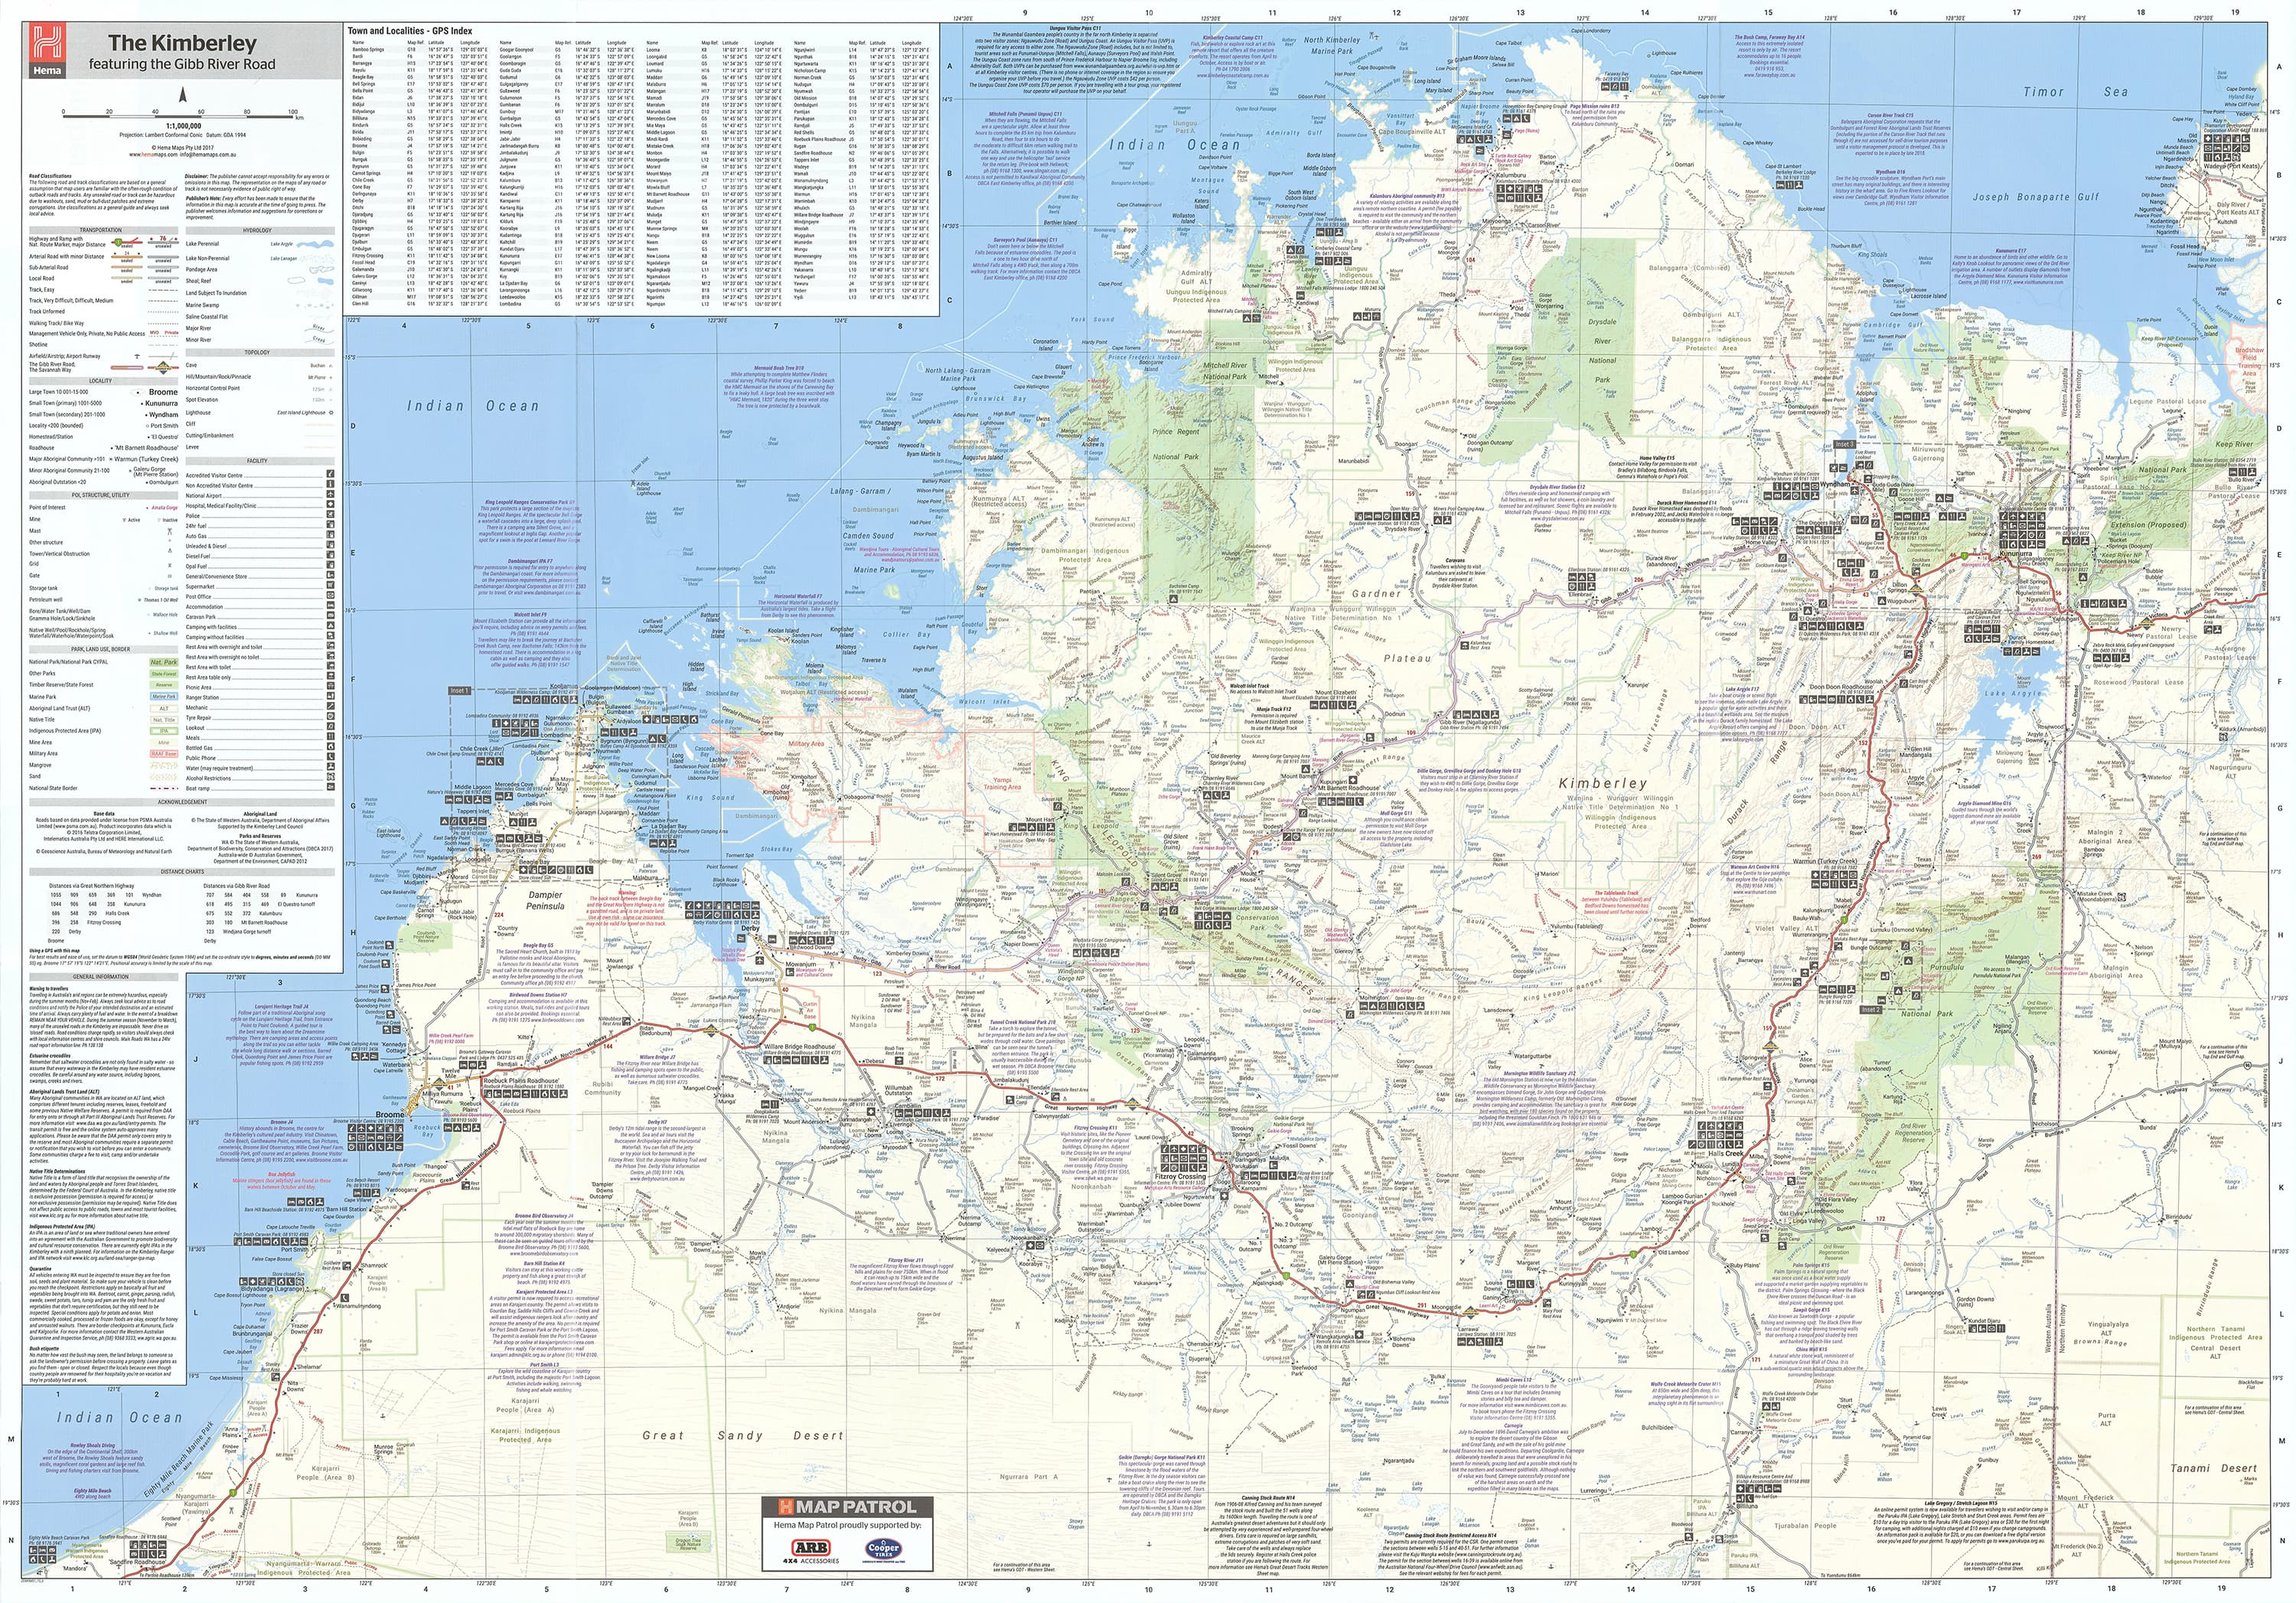 Kimberley Hema Map, Buy Map of Kimberley - Mapworld